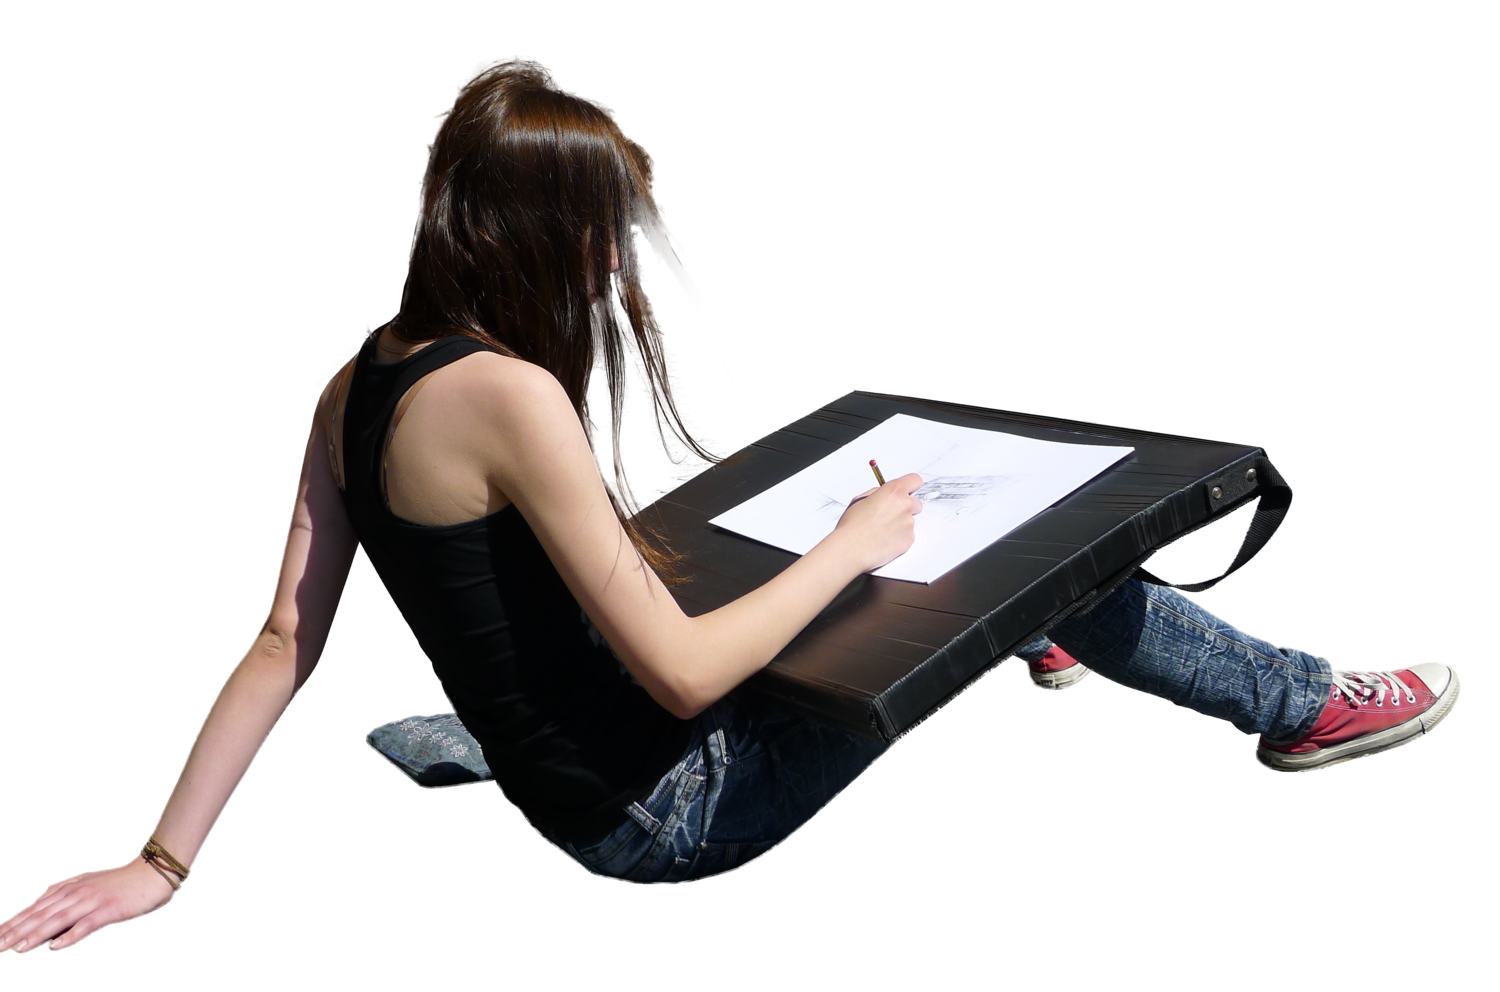 Girlsittingdrawing